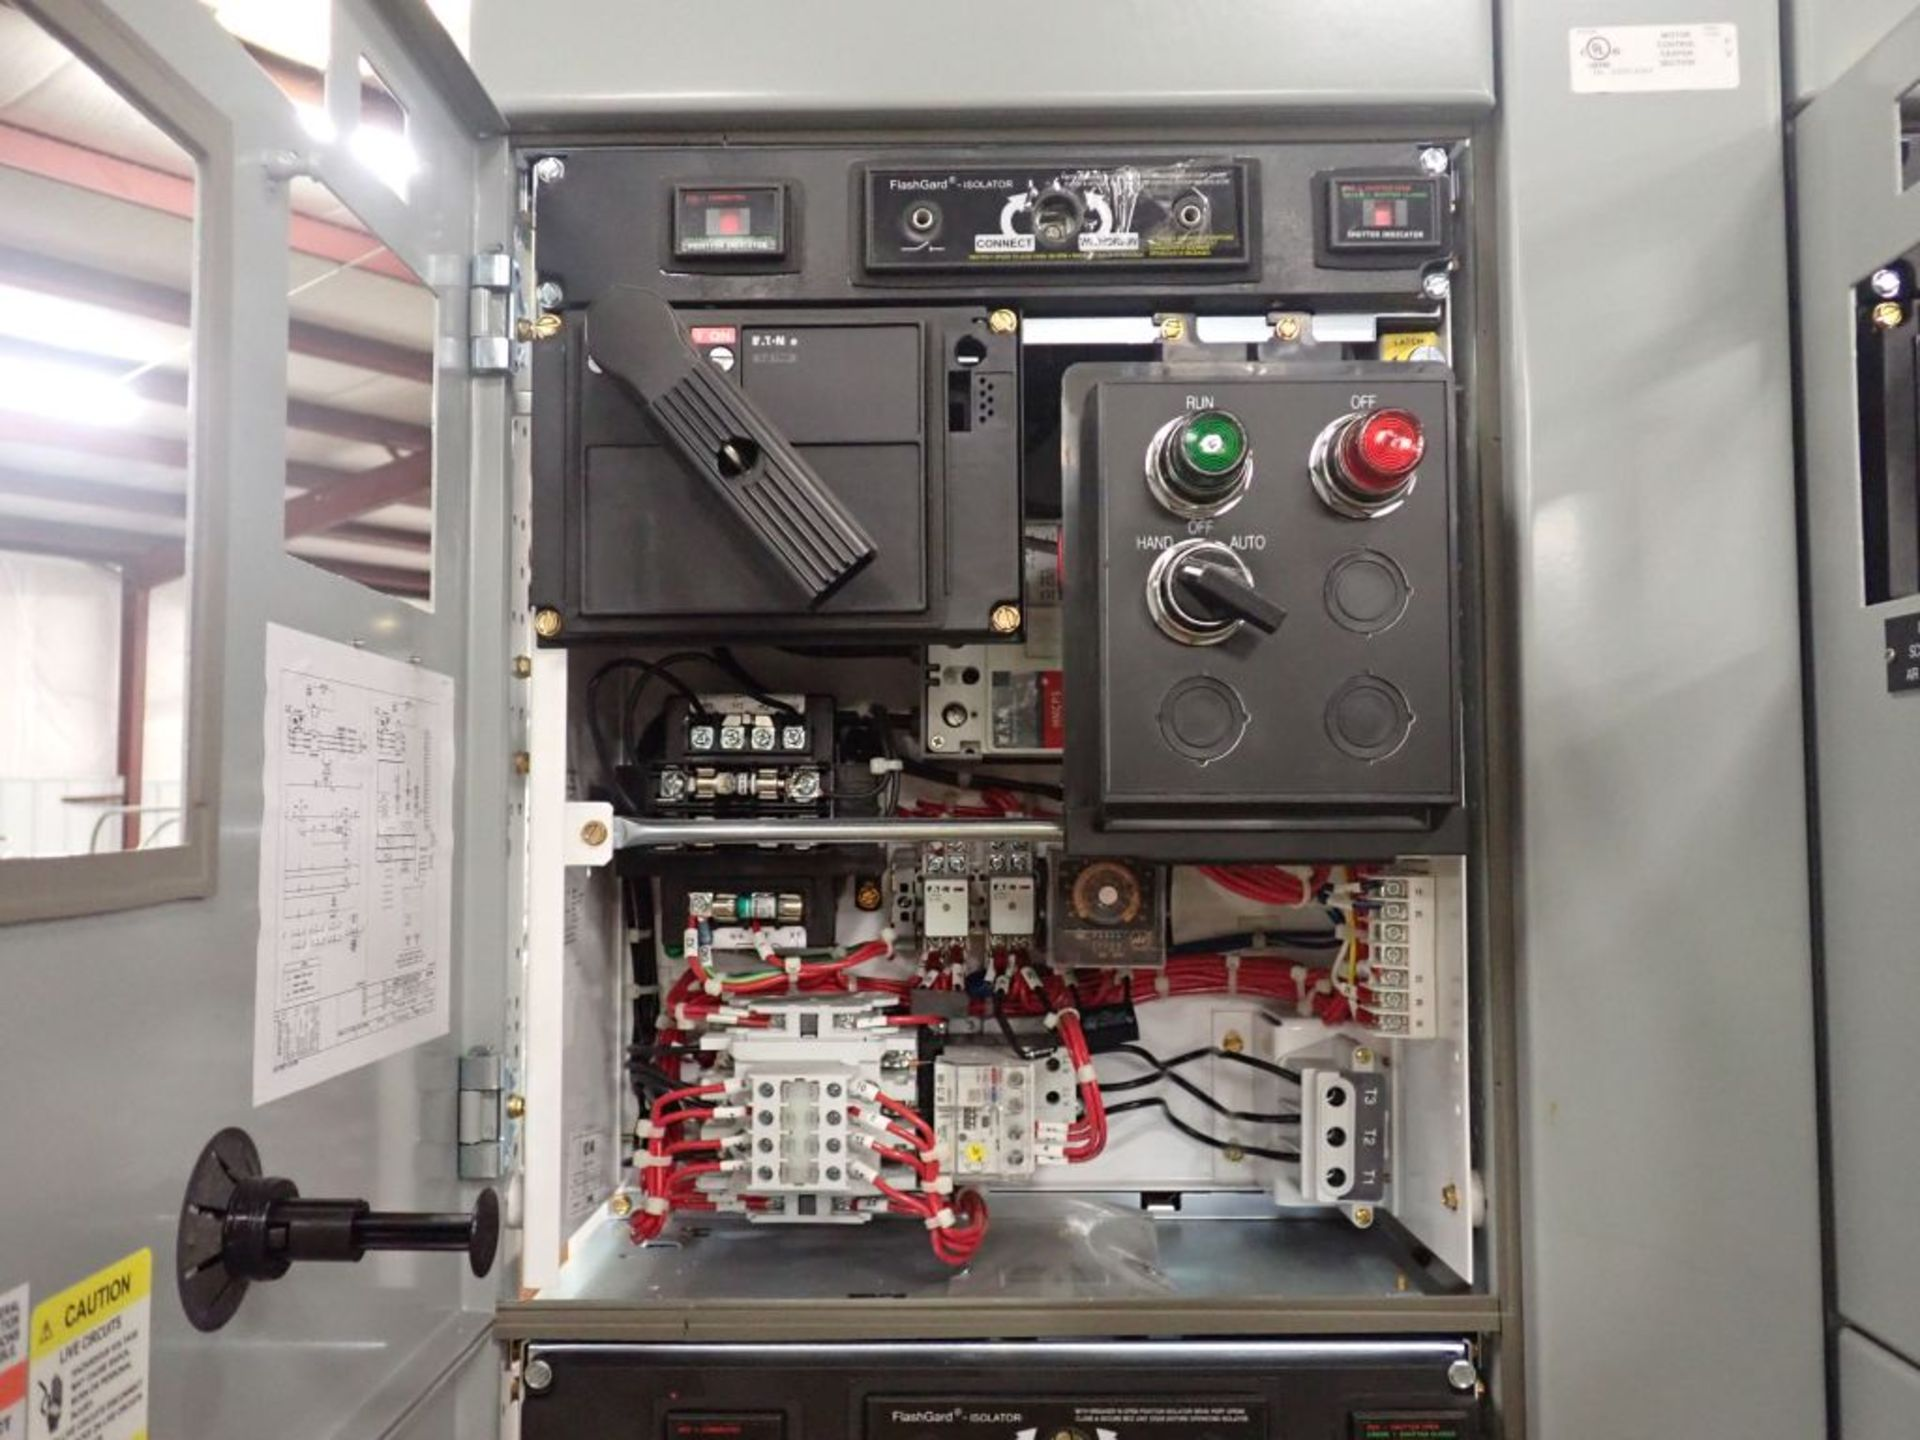 Eaton Freedom 2100 Series Motor Control Center   (2) F206-15A-10HP; (2) SVX900-50A, with Eaton AF - Image 14 of 48